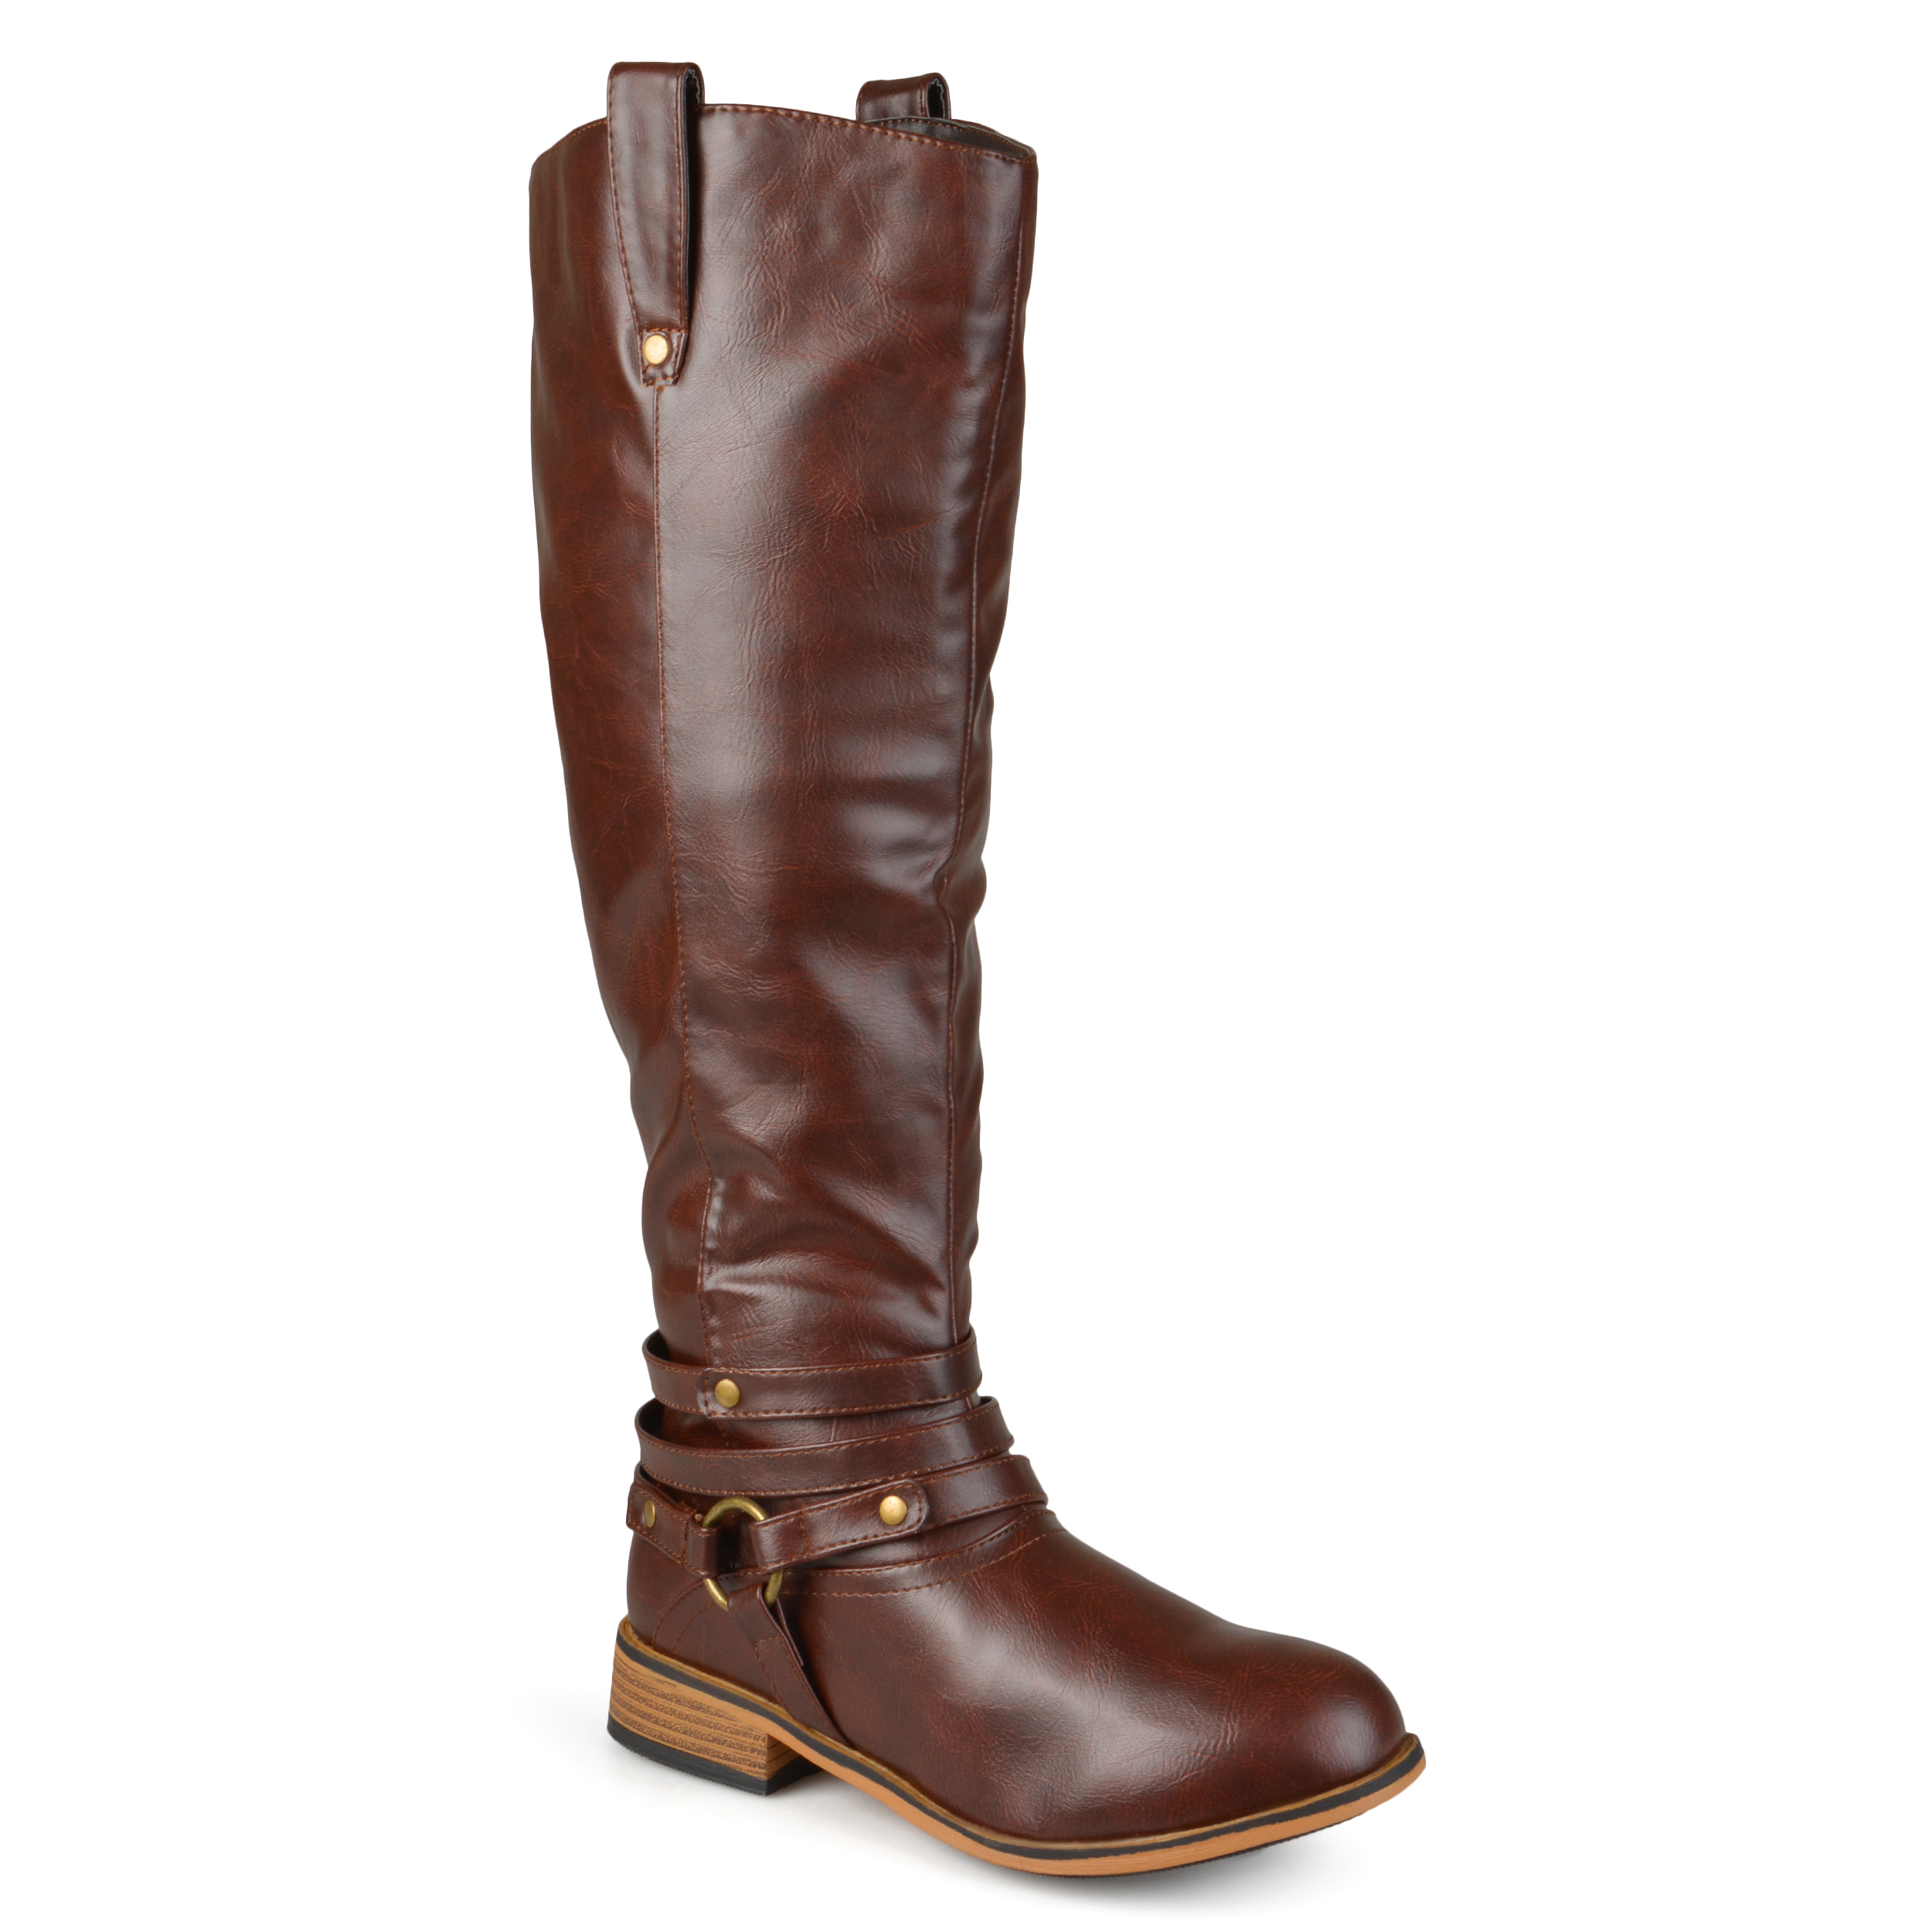 Journee Collection Womens Wide Calf Riding Boots | eBay